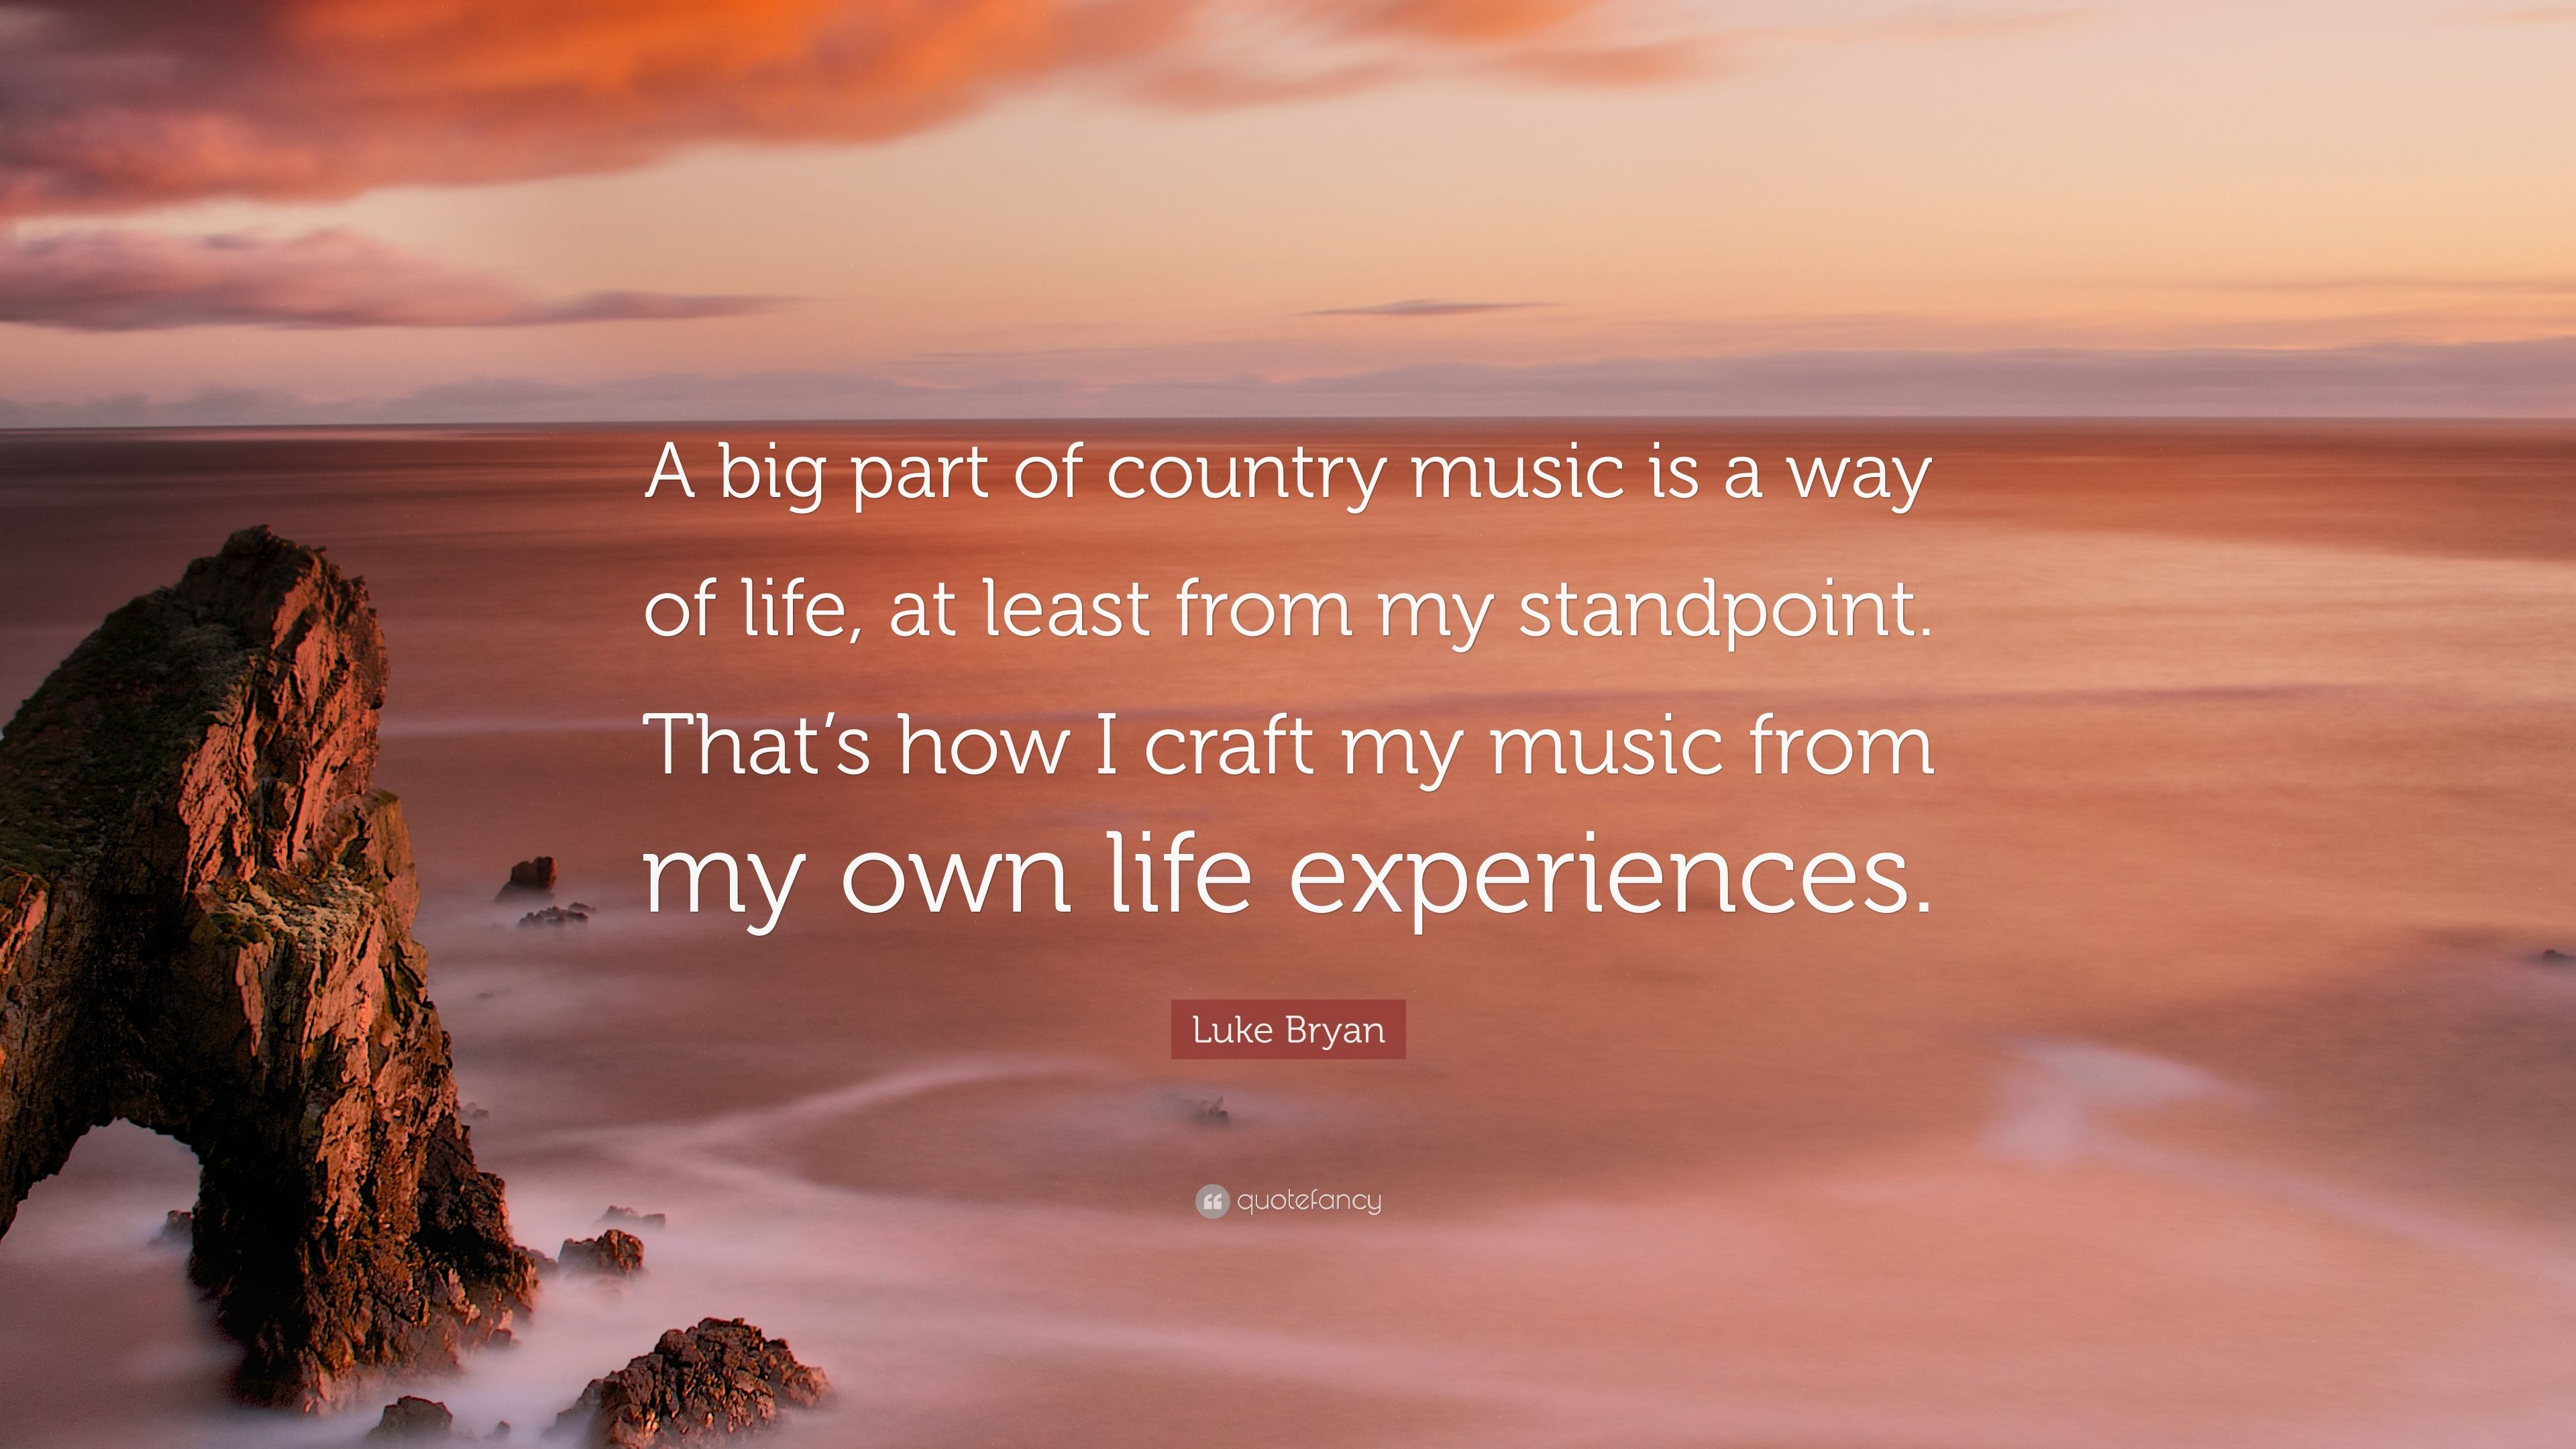 """luke bryan quote """"a big part of country music is a way of life"""